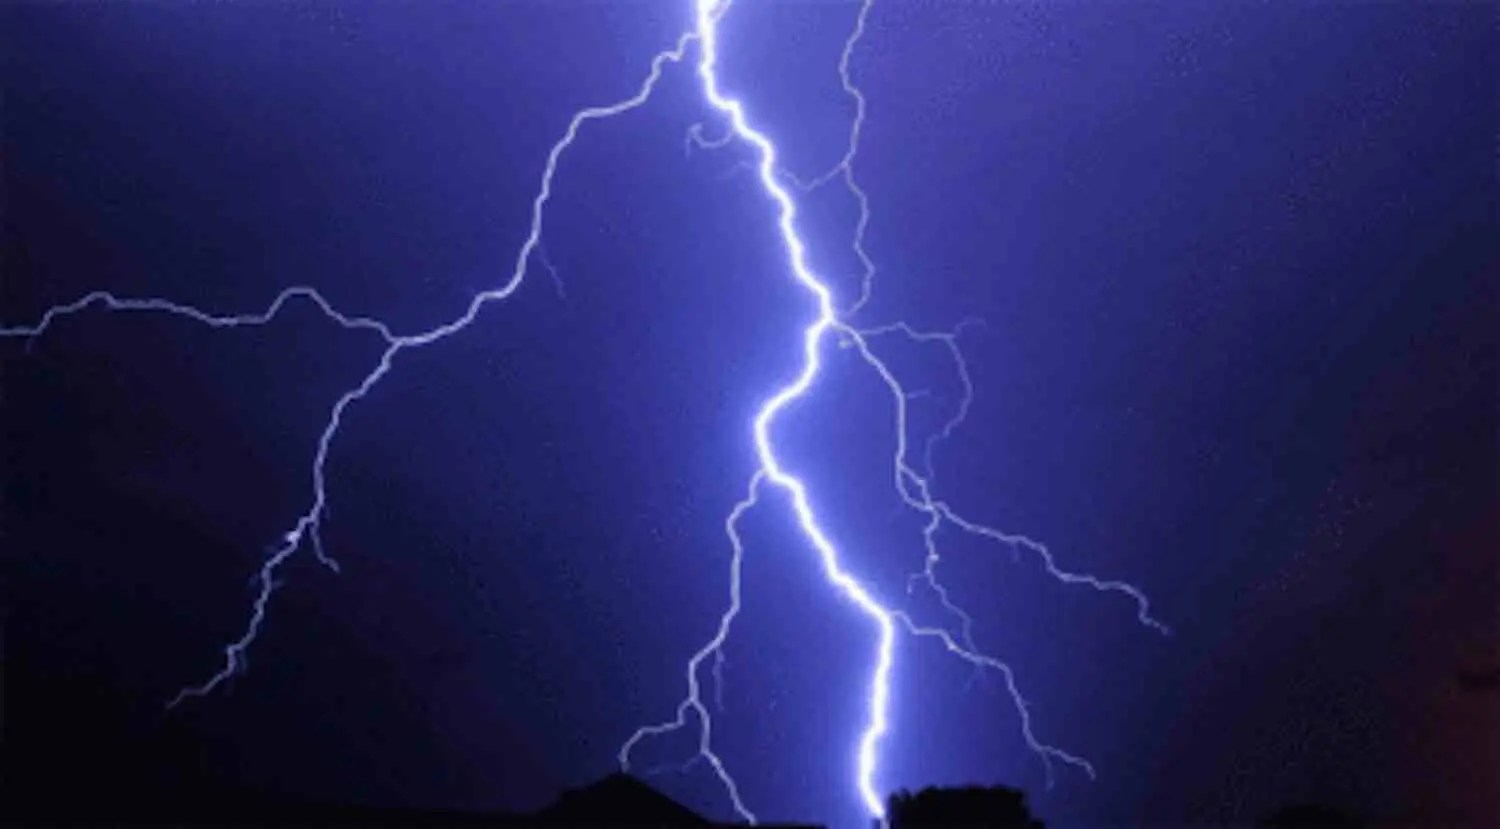 Lightning in Poland kills five and injures more than 100